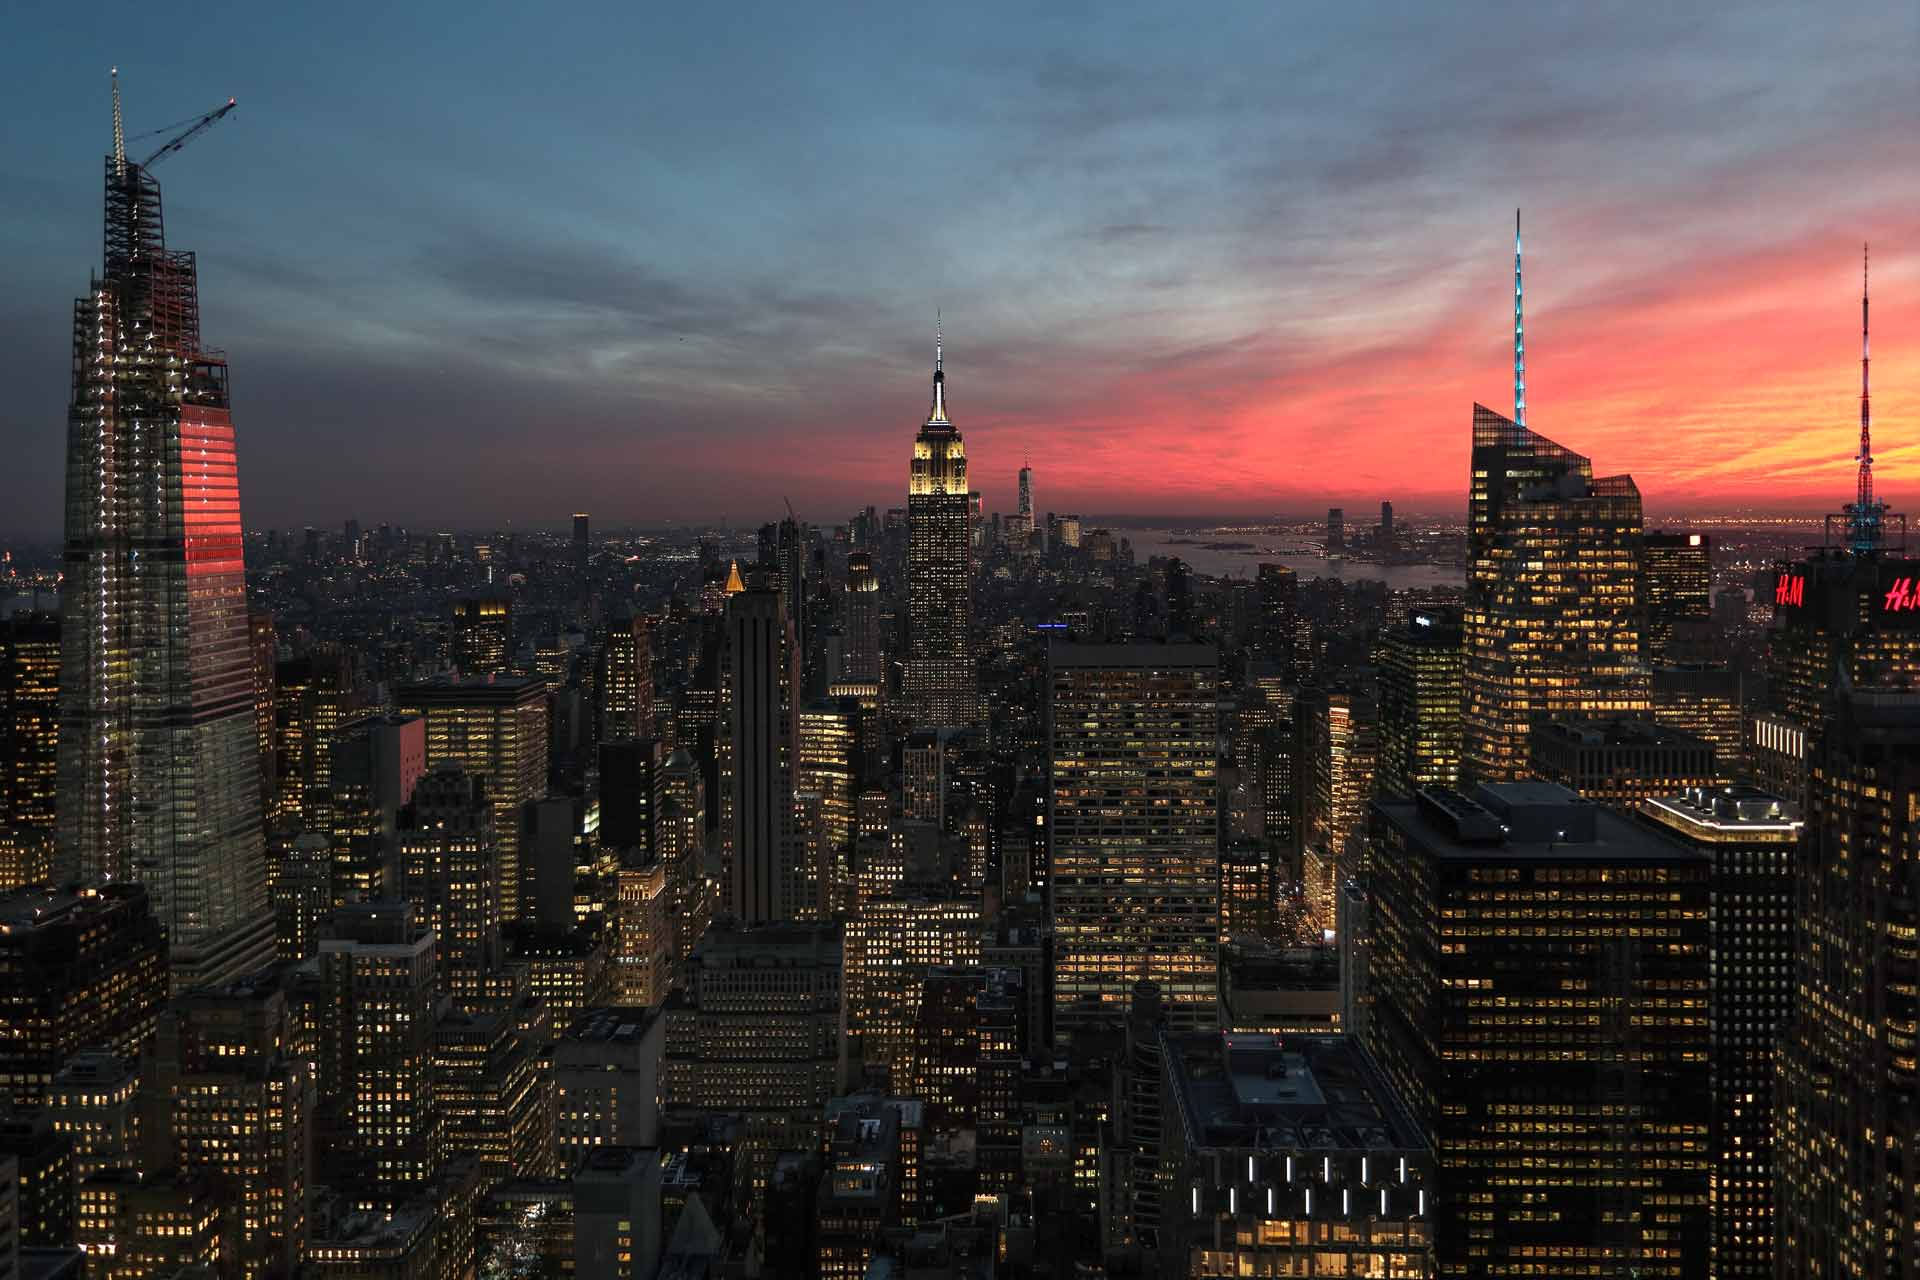 top-of-the-rock-new-york-city-empire-state-building-view-landscape-sunset